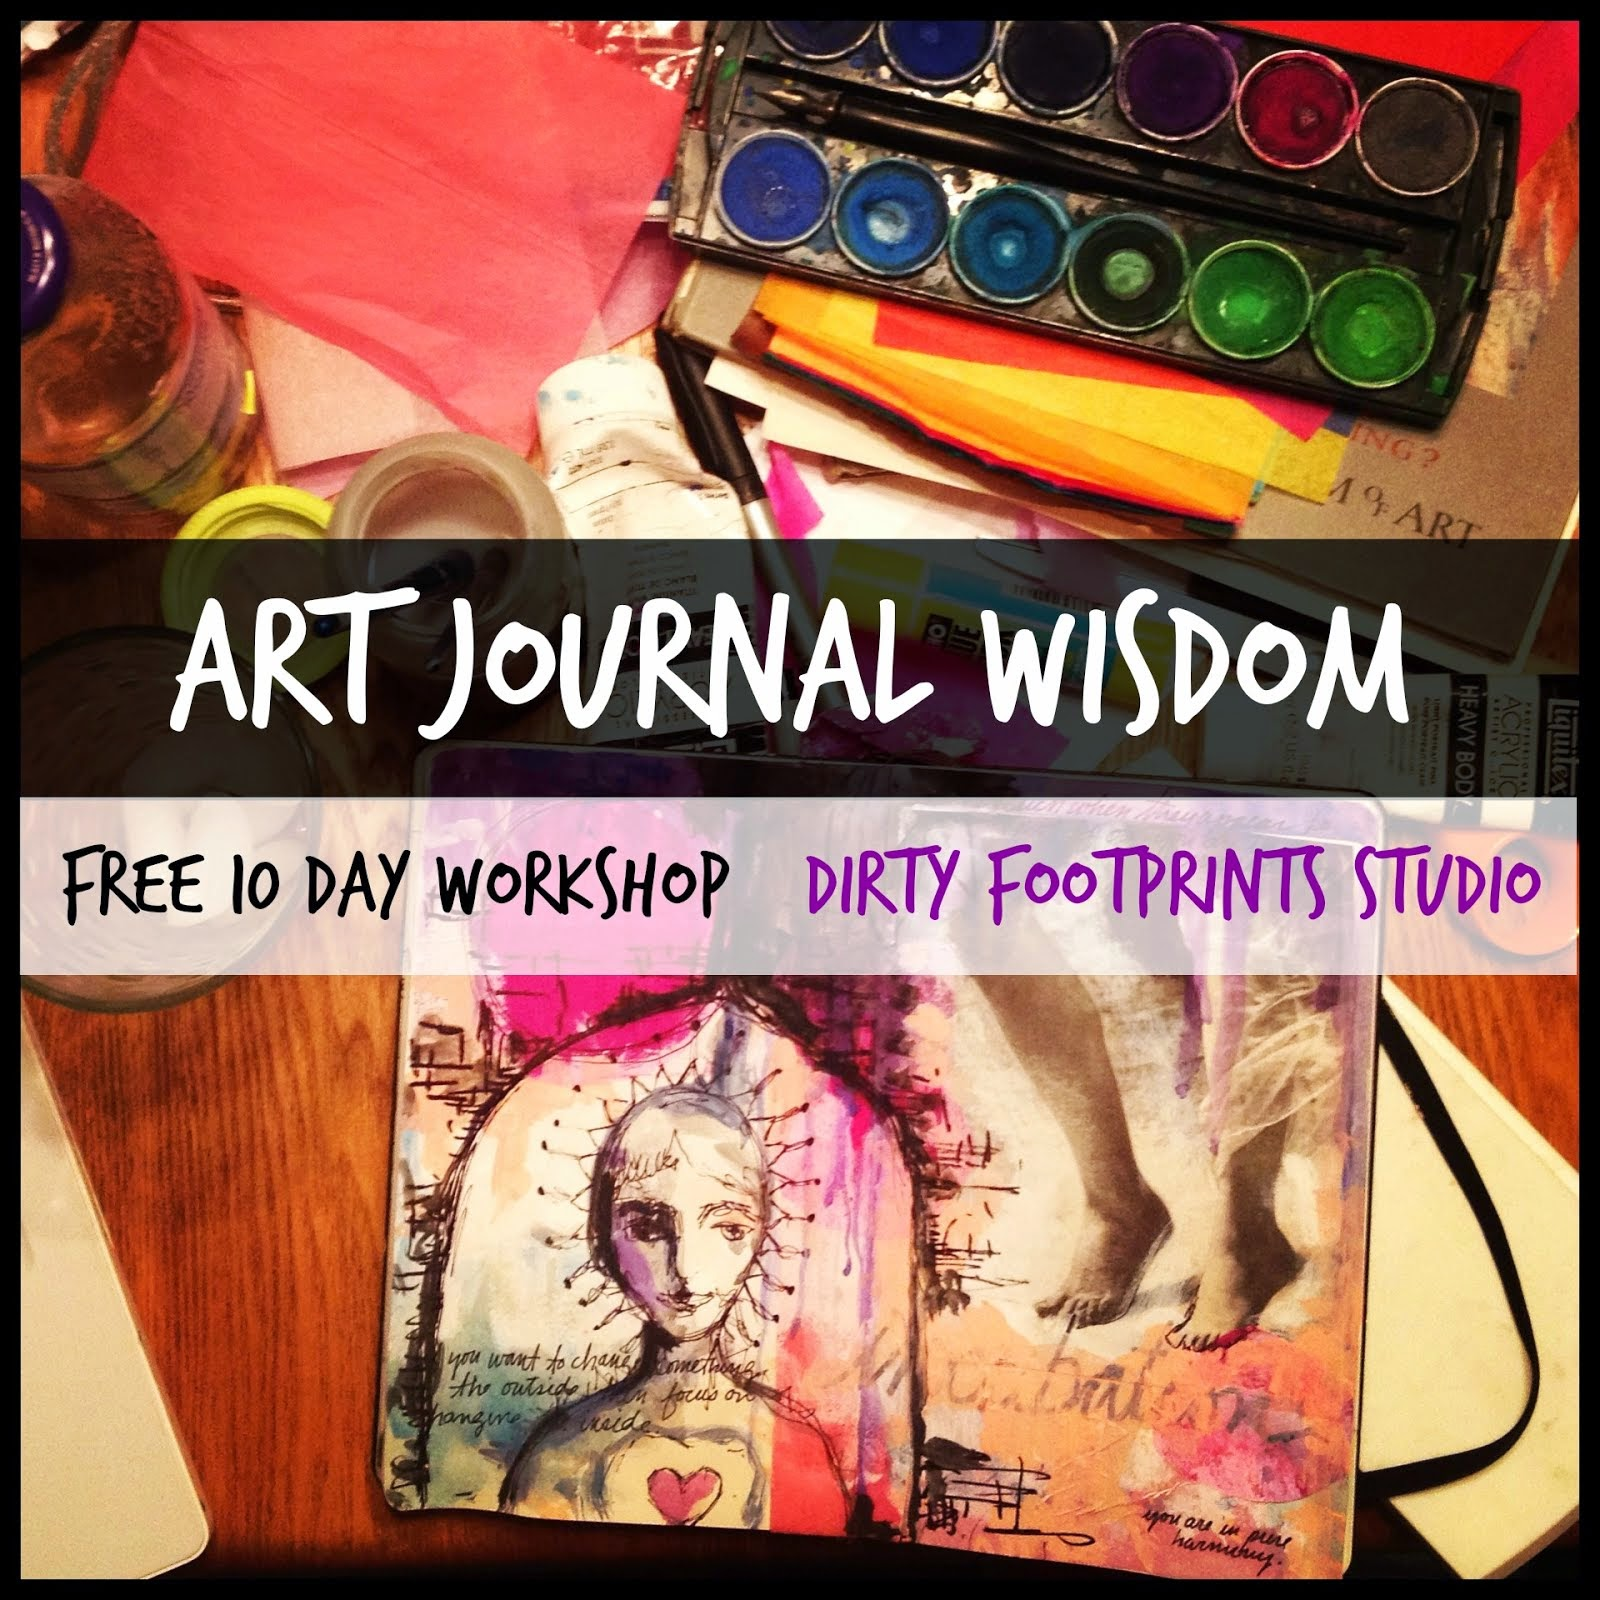 FREE Workshop!